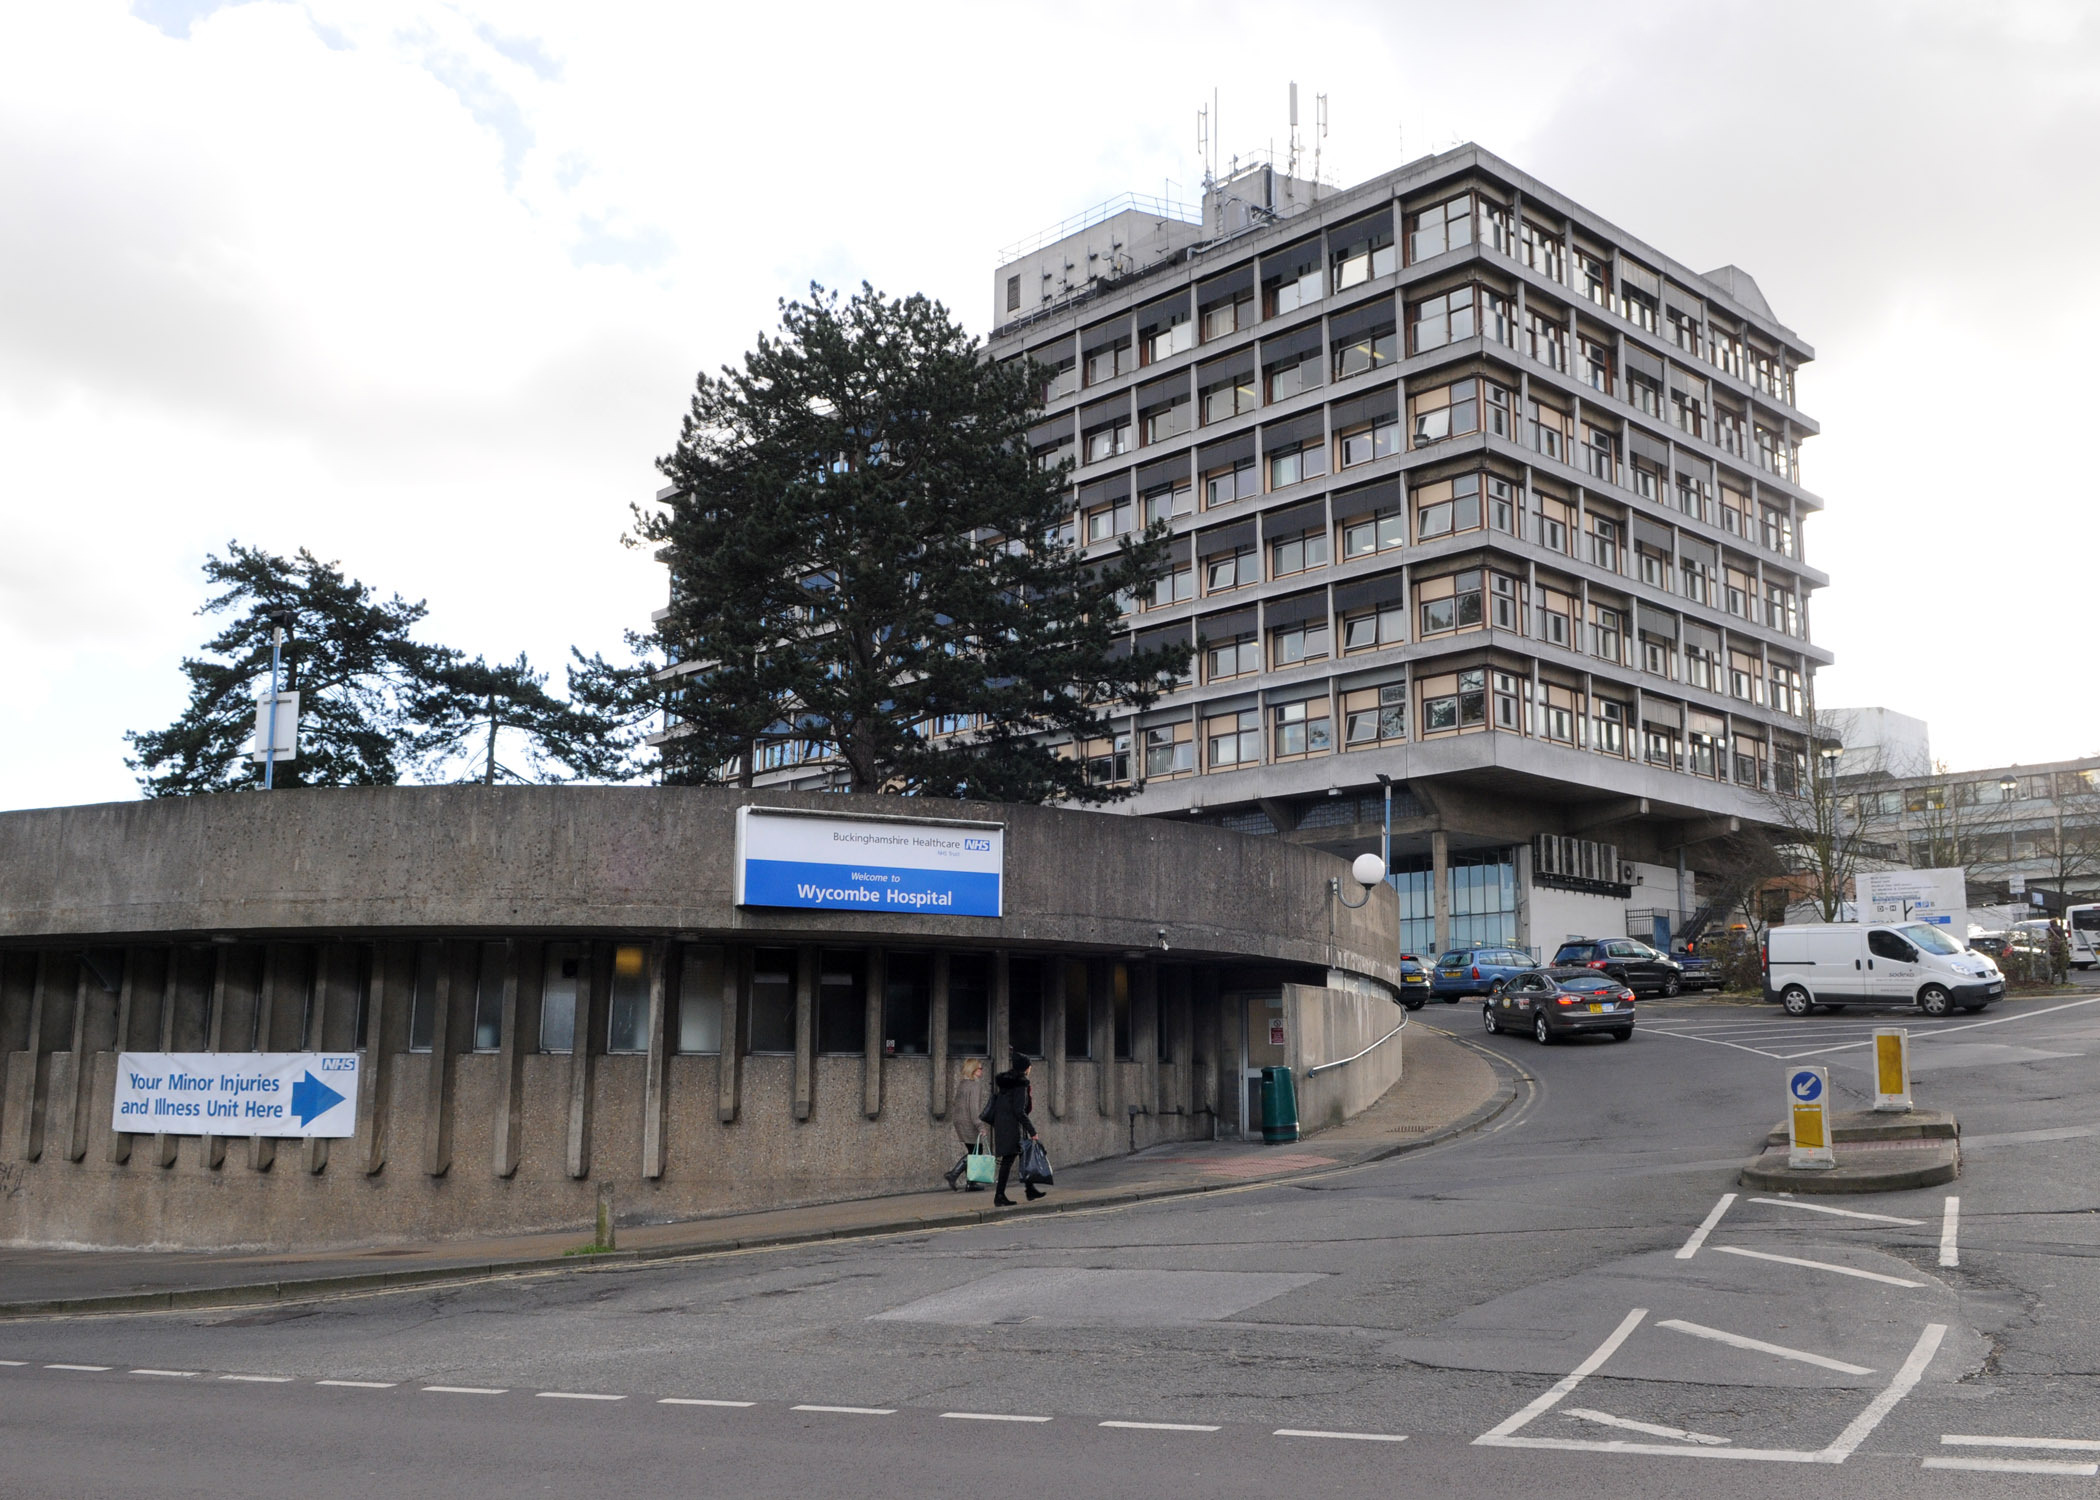 Maternity centre at Wycombe Hospital to suspend birthing services due to staff shortage